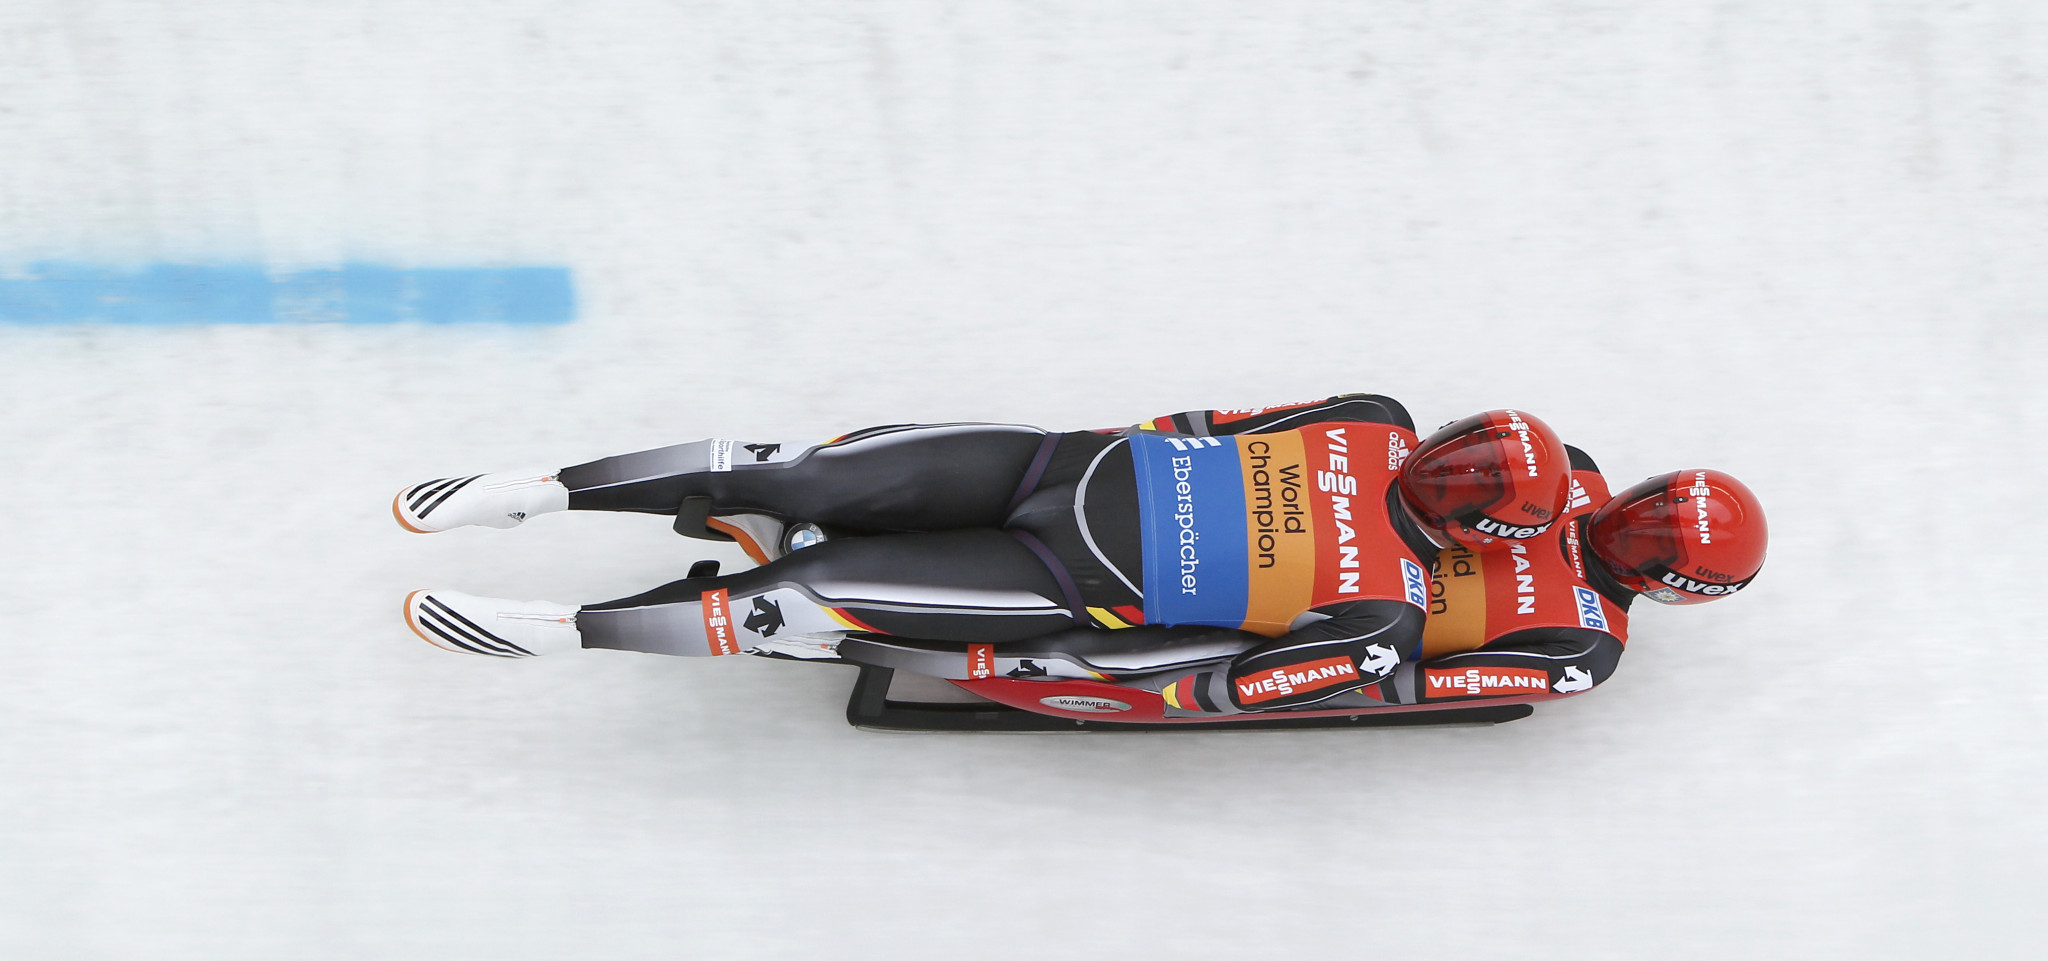 Germany's double Olympic champions Tobias Wendl and Tobias Arlt claimed victory for the first time this season ©Getty Images